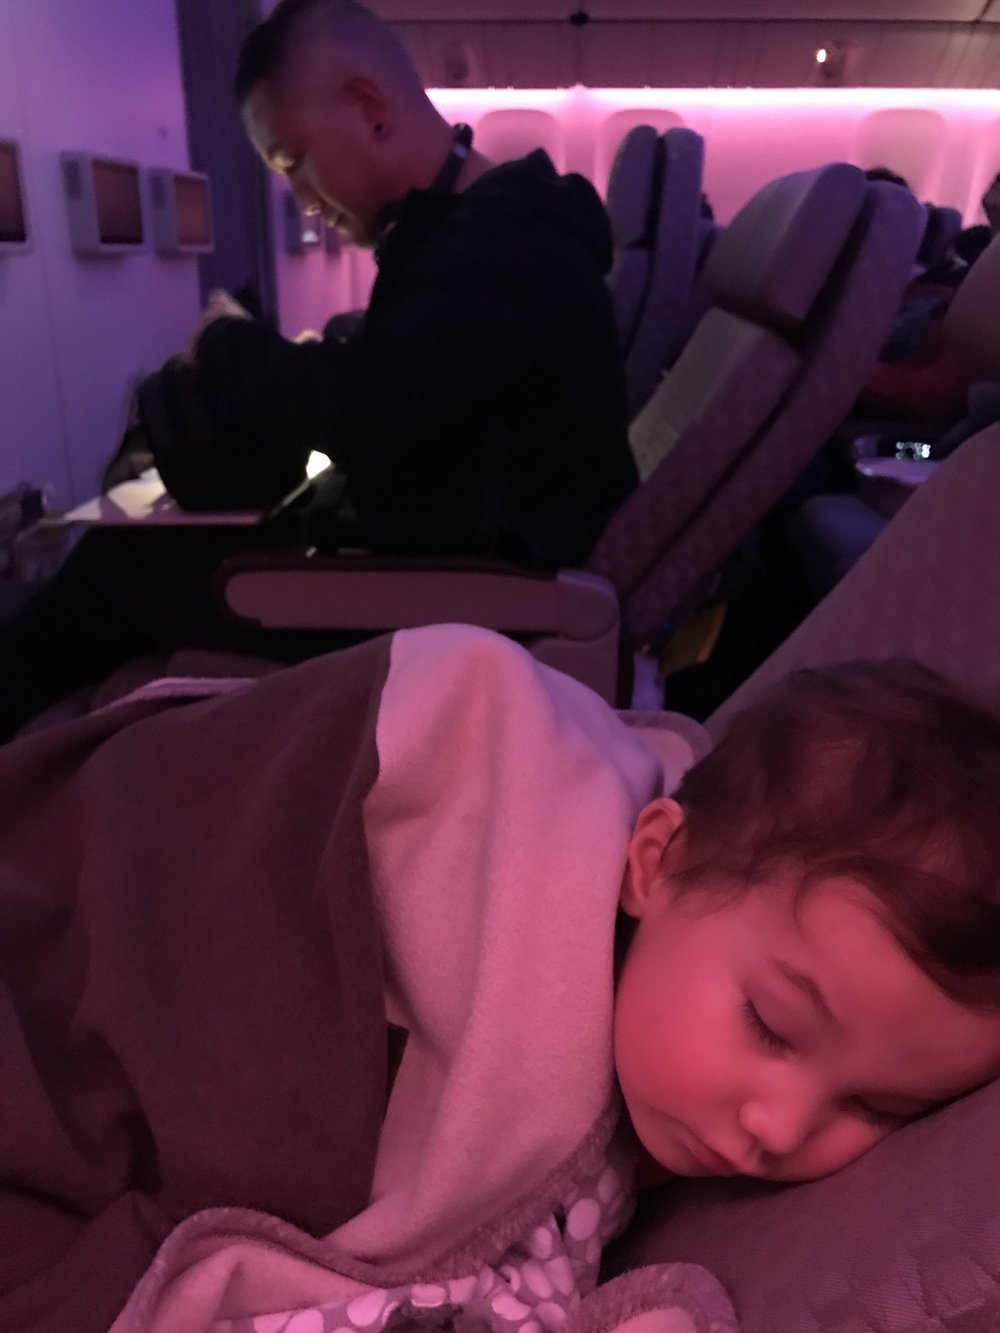 Settling-in and getting comfy on our EVA Air flight to Taipei. Bringing familiar items like a blankie, toys and books are a must for travel with the kiddos.